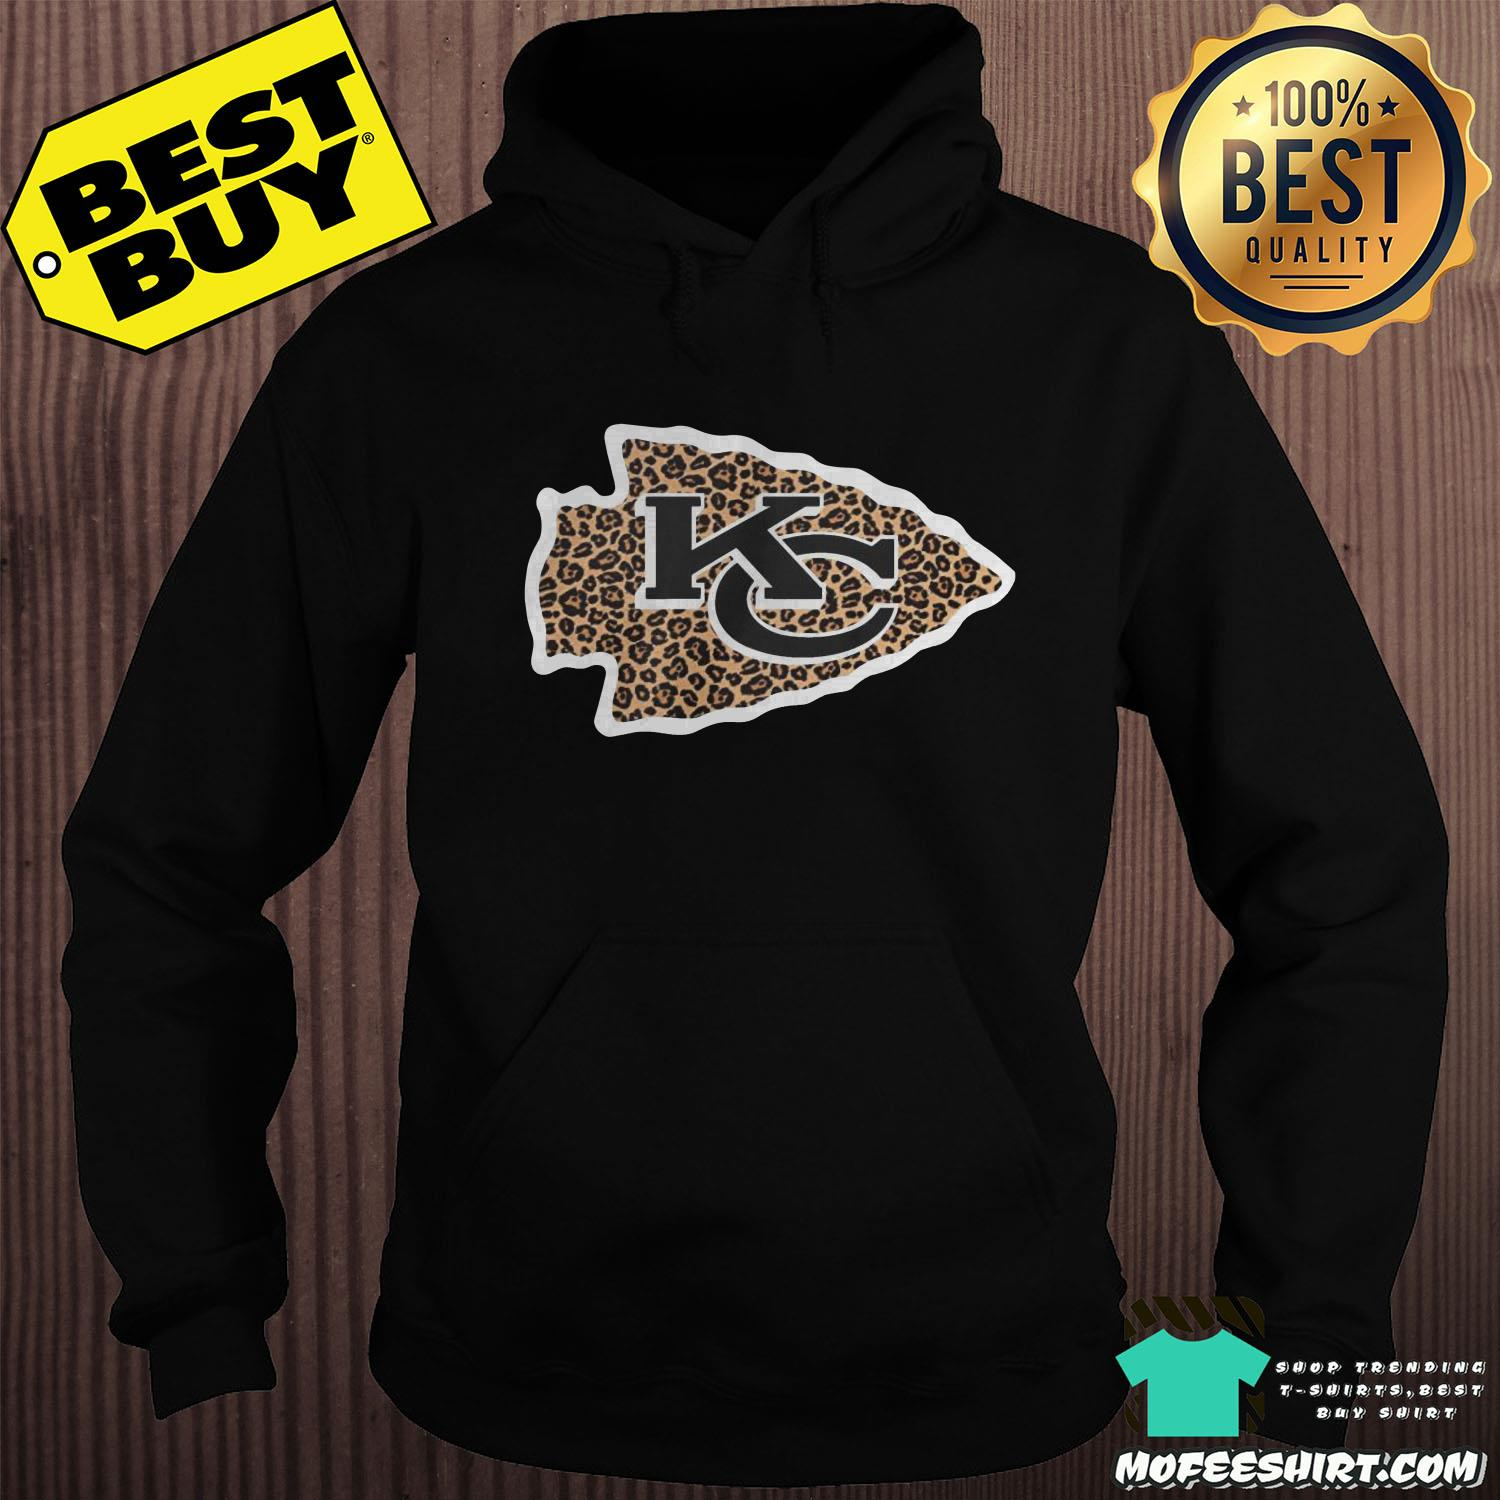 old glory kansas city chiefs hoodie - Old Glory Kansas City Chiefs Shirt